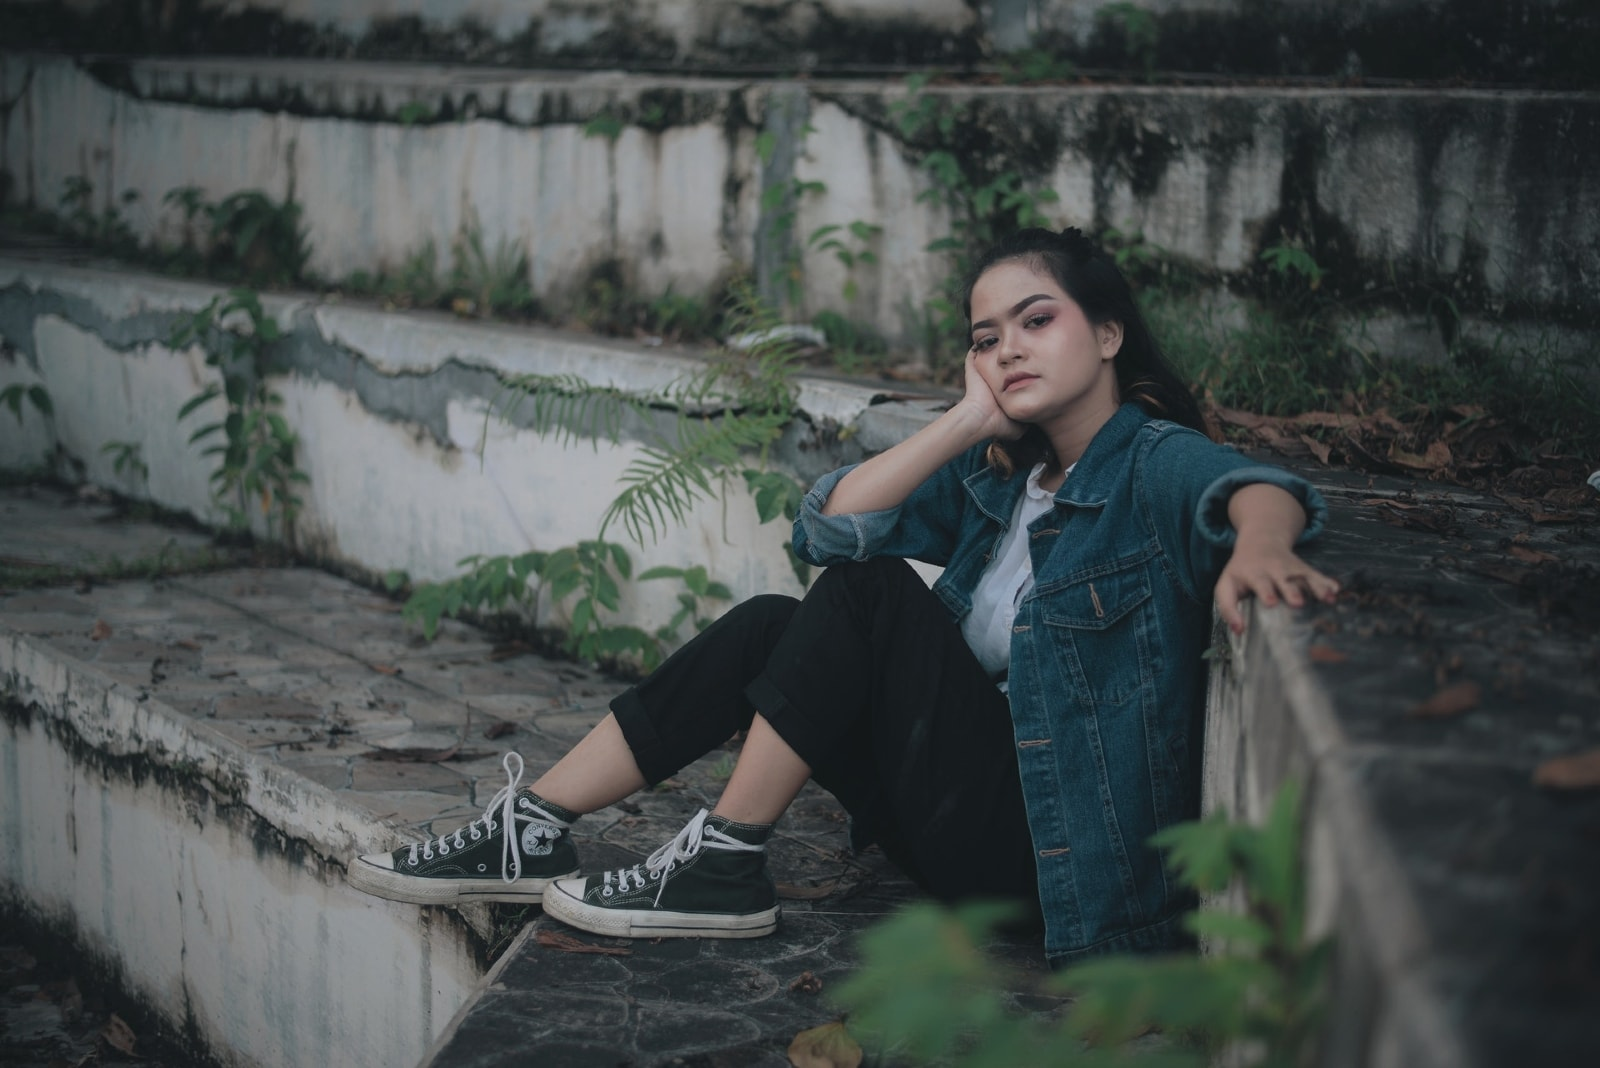 woman in denim jacket sitting on stairs